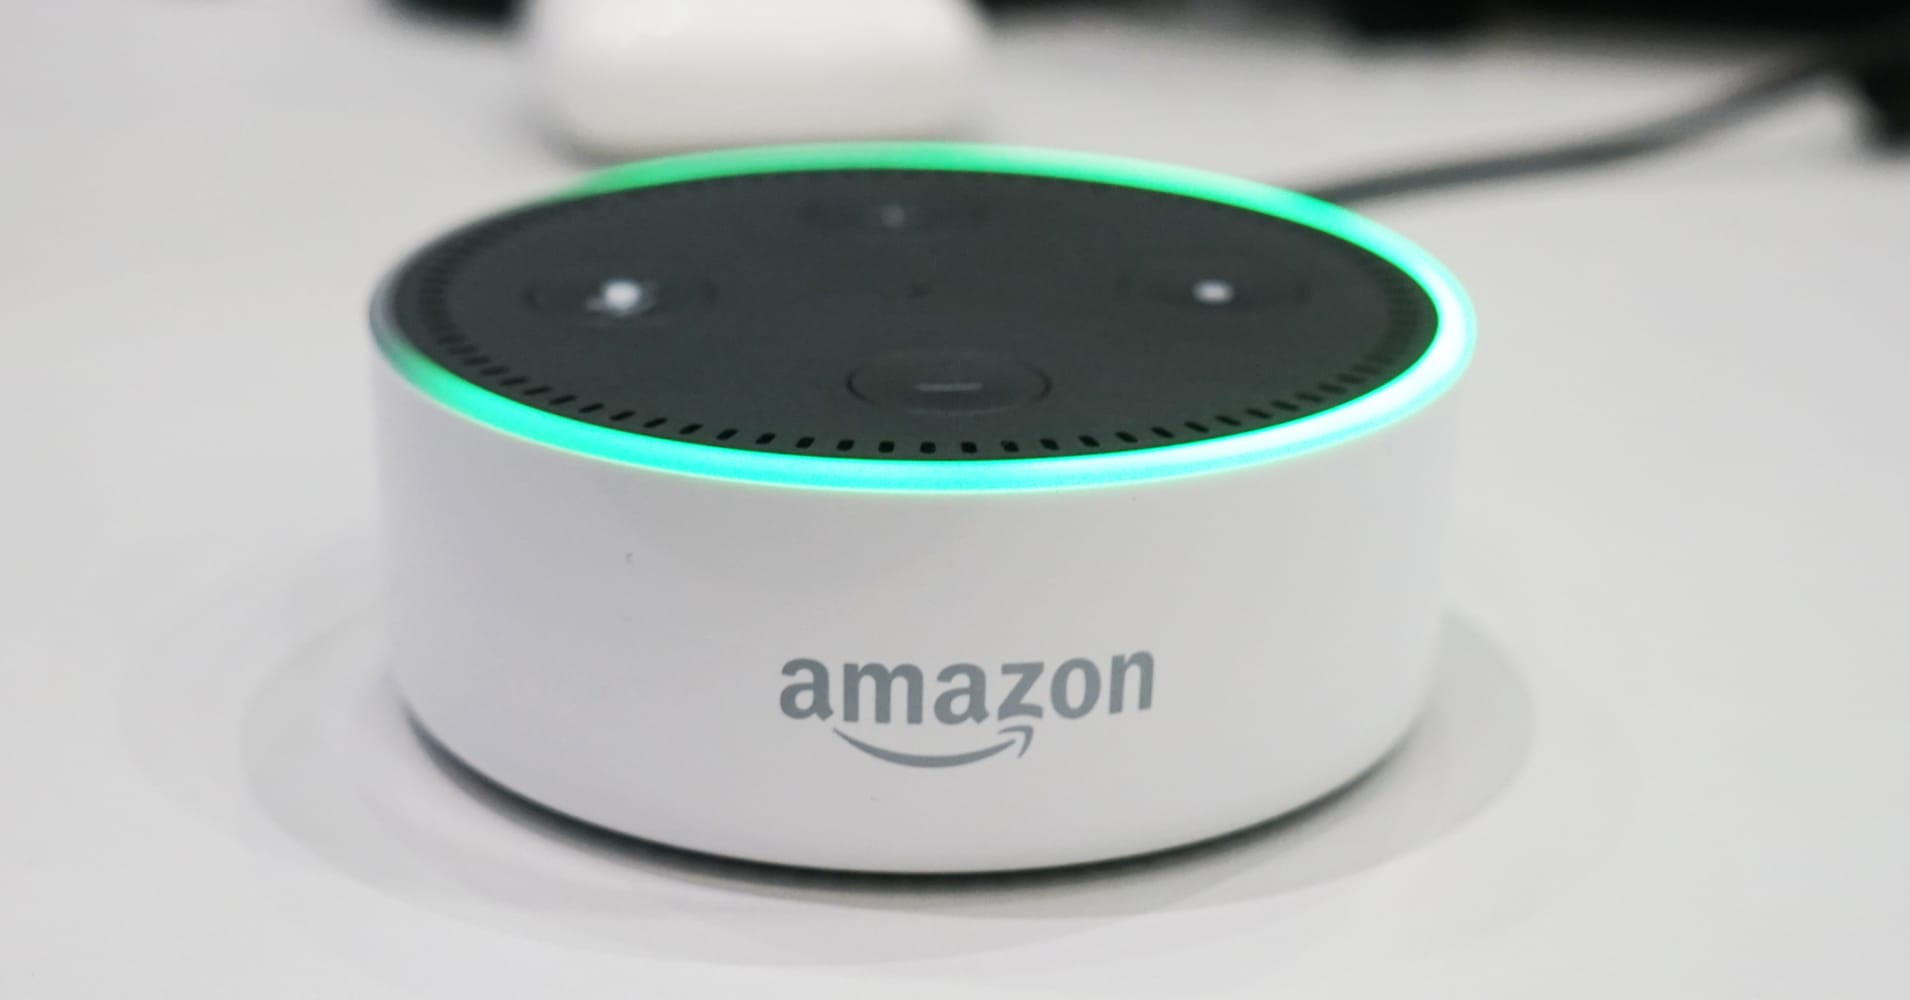 Here's what all of the lights on your Amazon Echo mean, and how to turn them off